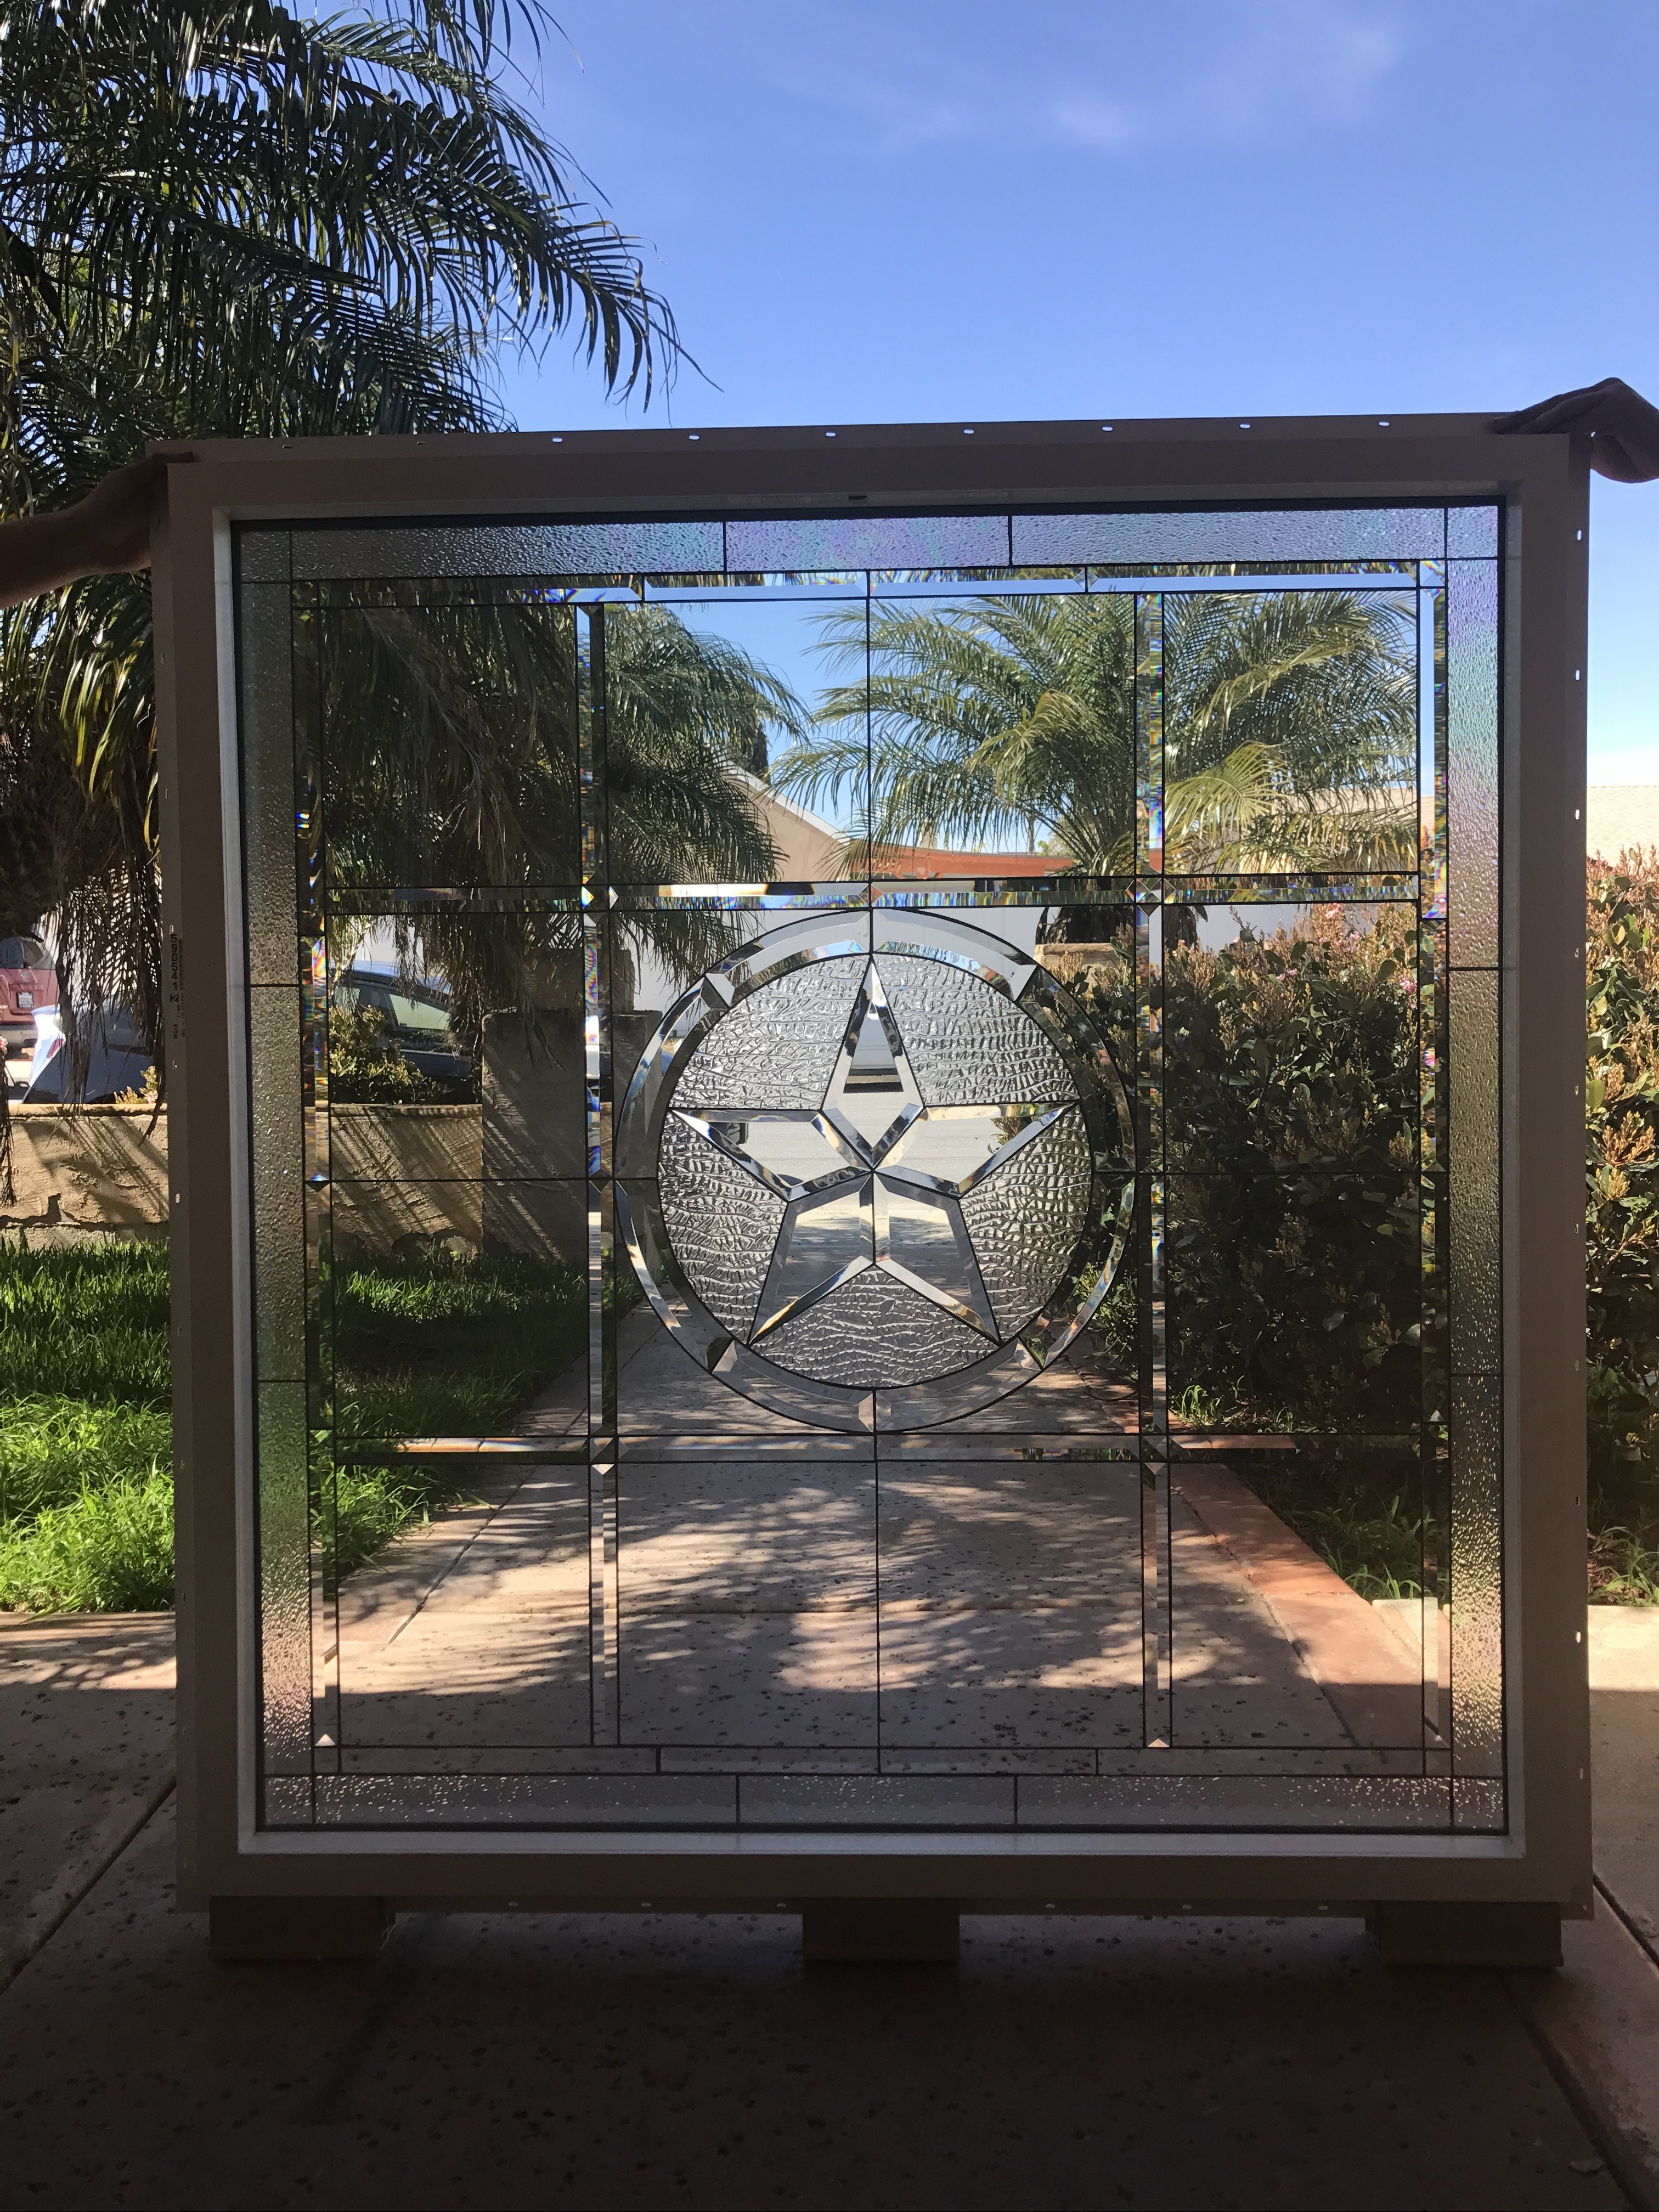 Install Ready Magnificent 46 X 48 Beveled Texas Lone Star